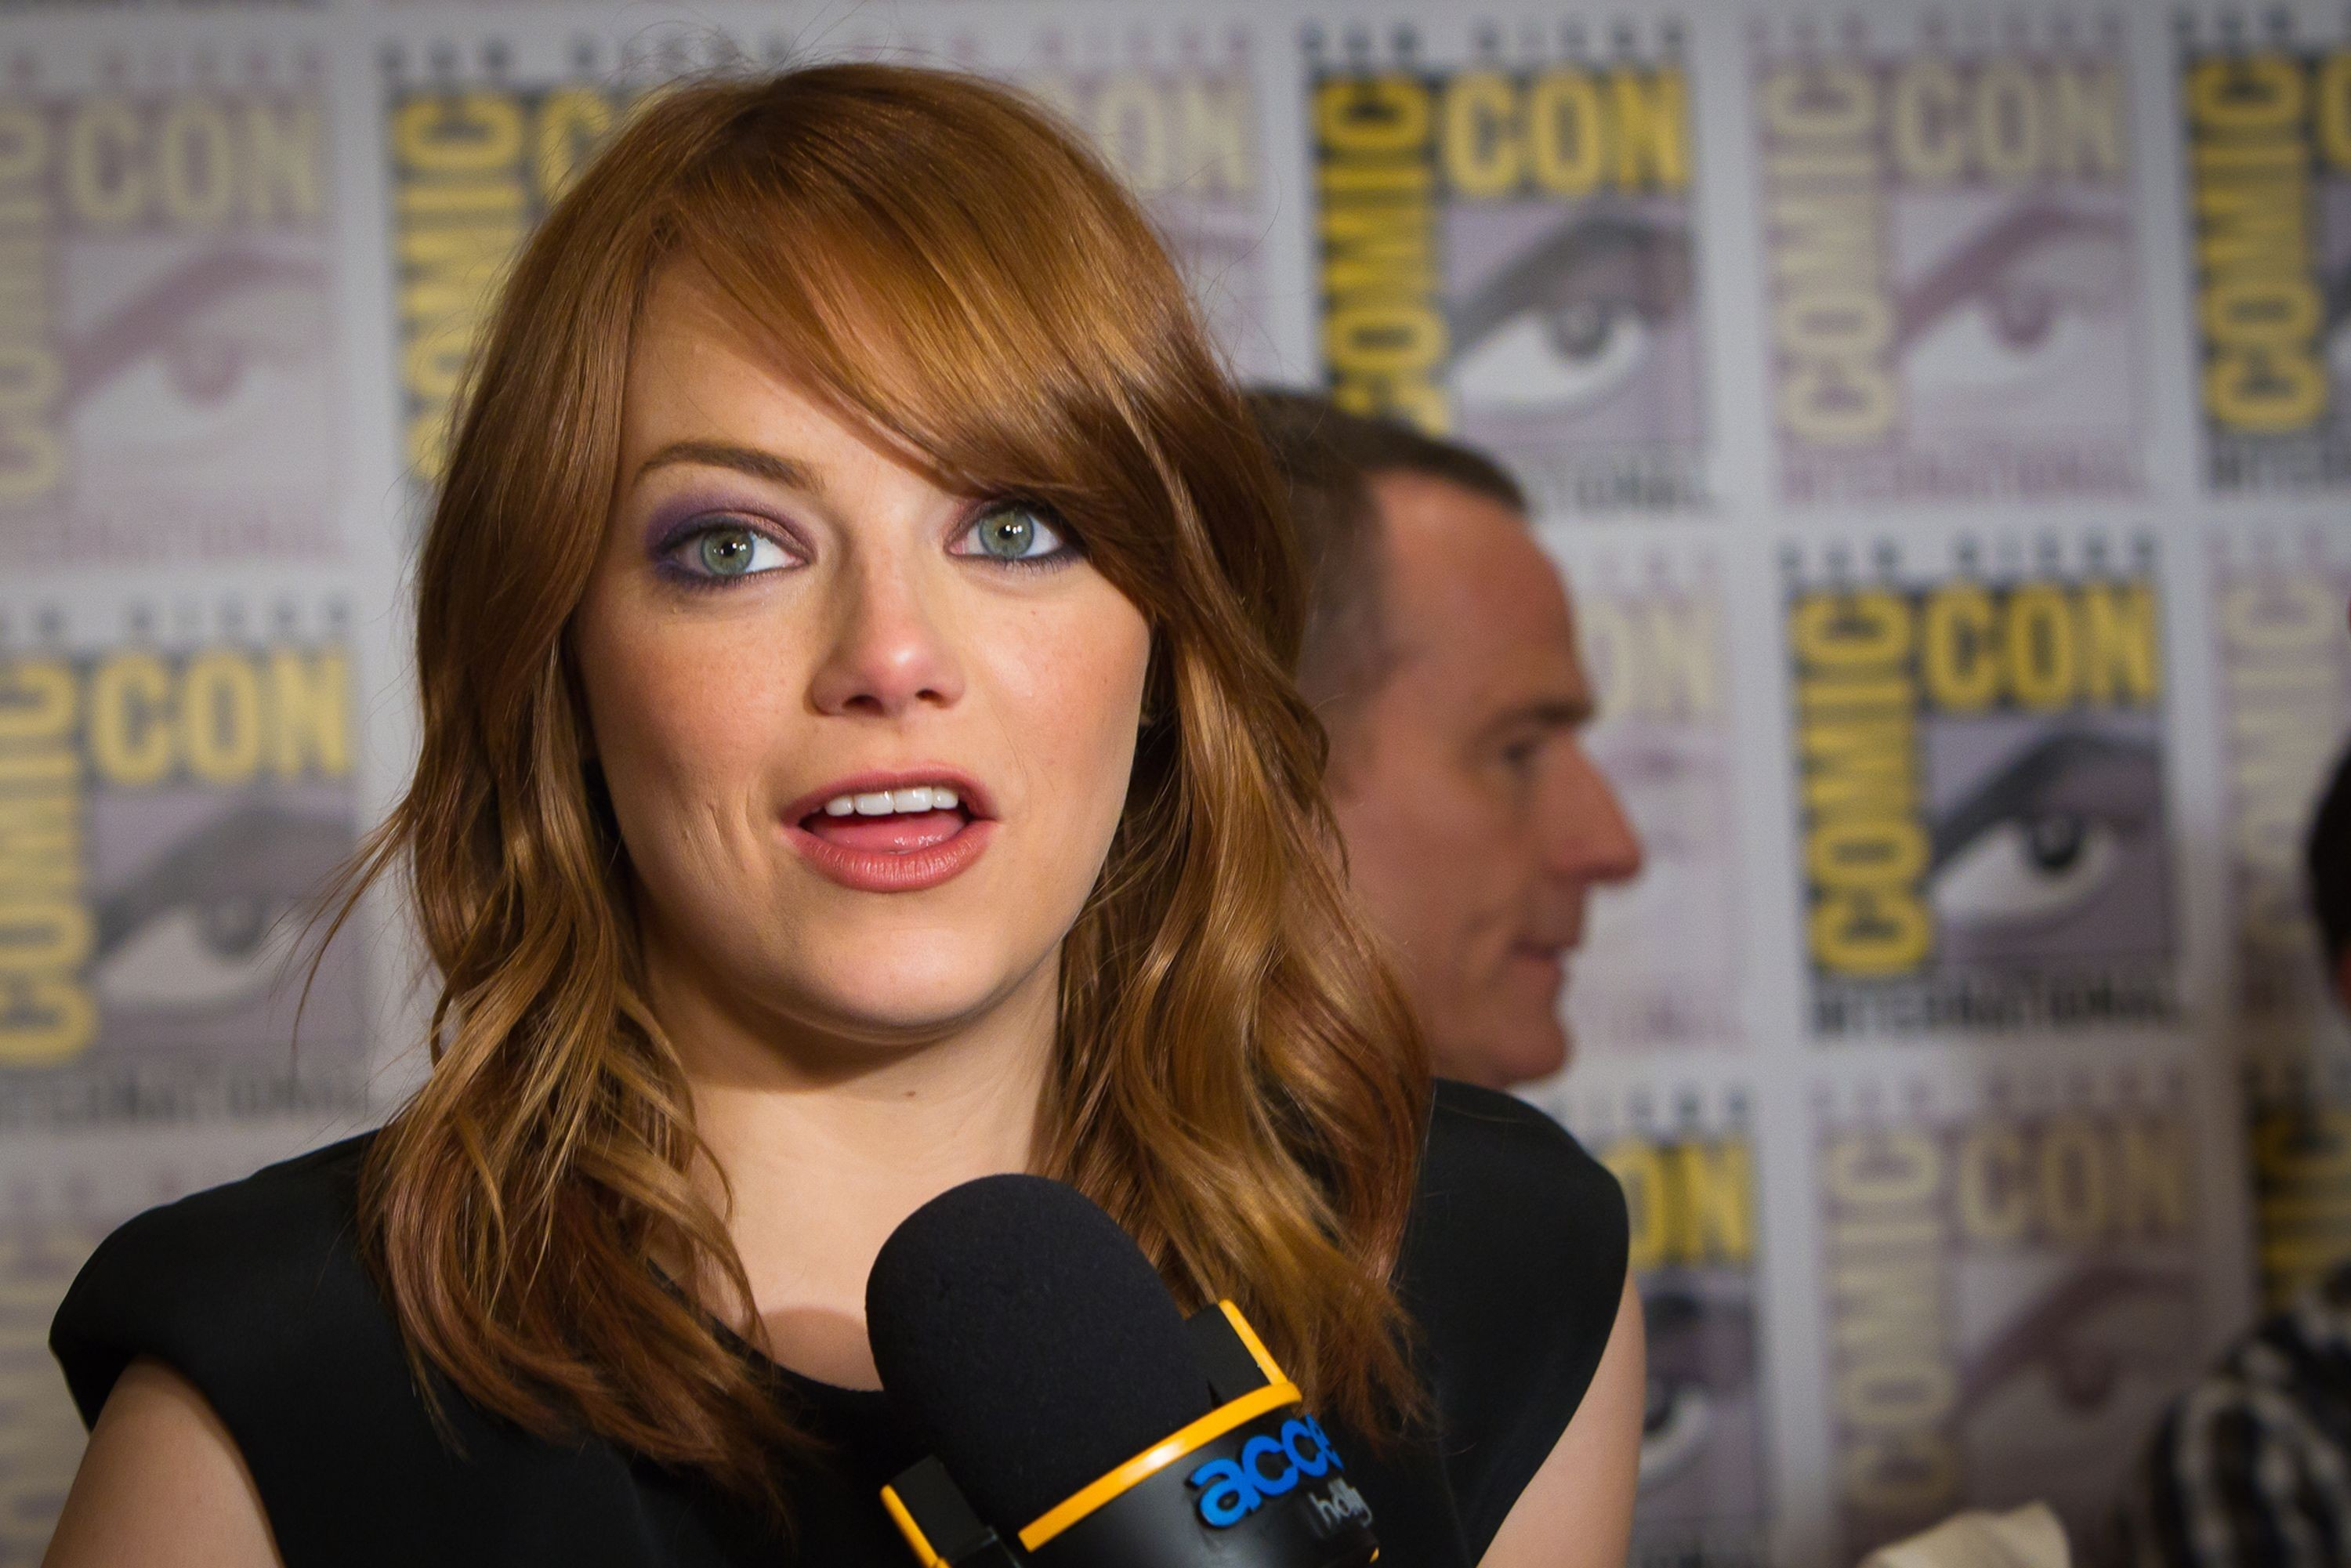 woman emma stone Comic-Con HD Wallpaper